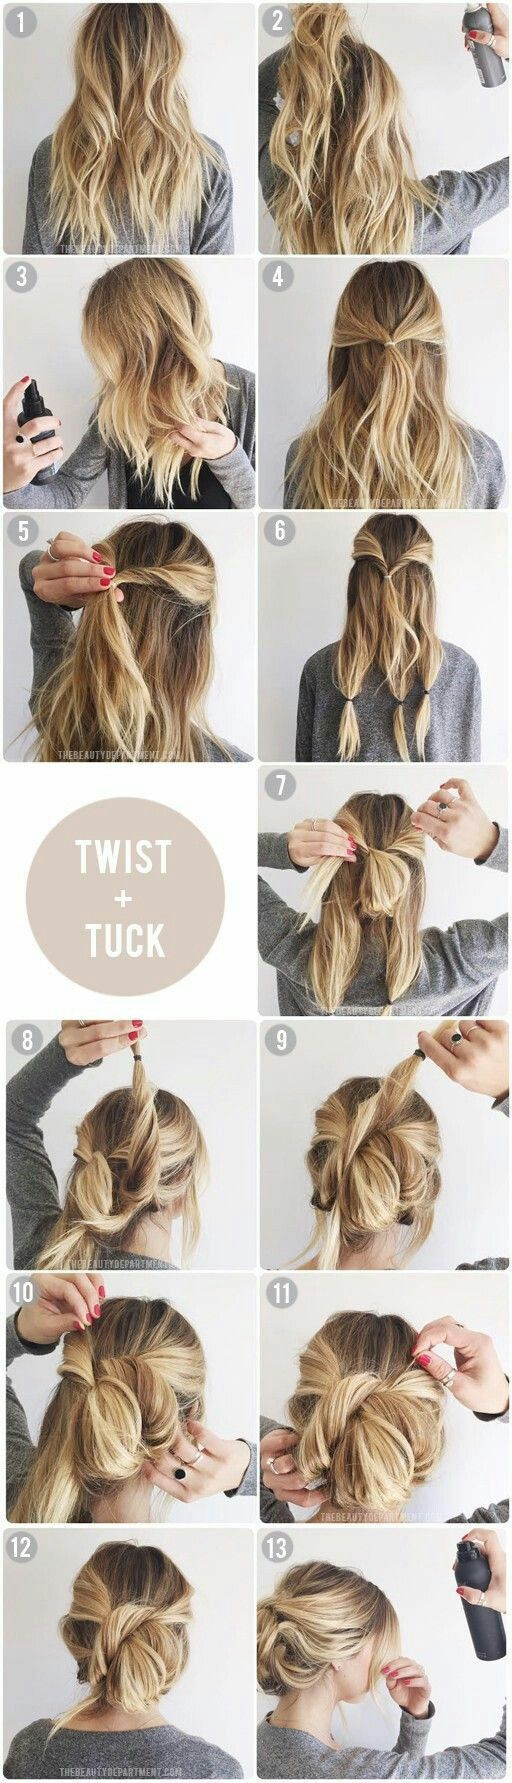 12 best hair images on Pinterest | Braided hairstyle, Hairstyles and ...